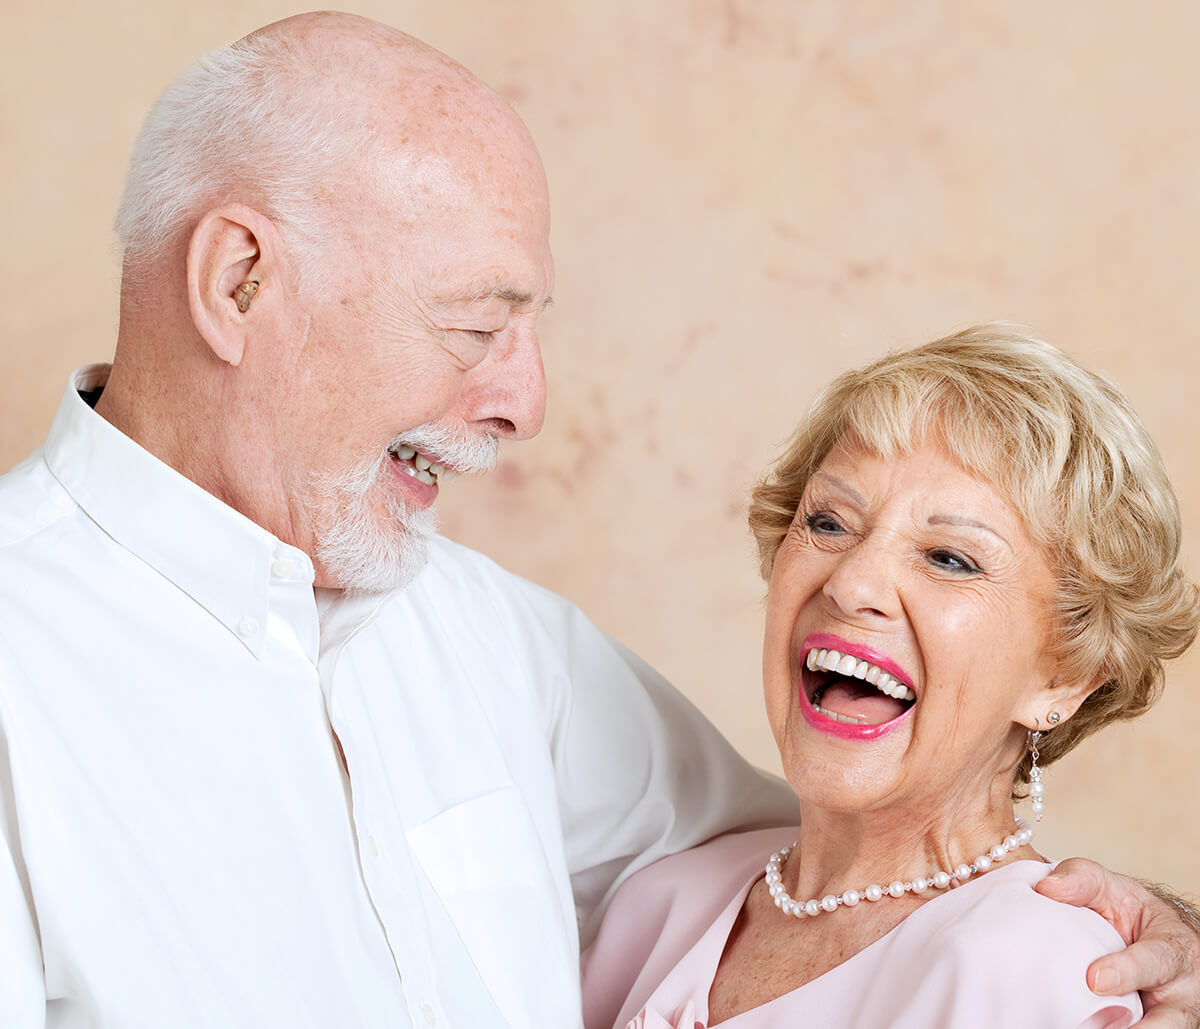 Get Quality Dentures at Virtue Dental Care in Yadkinville Area